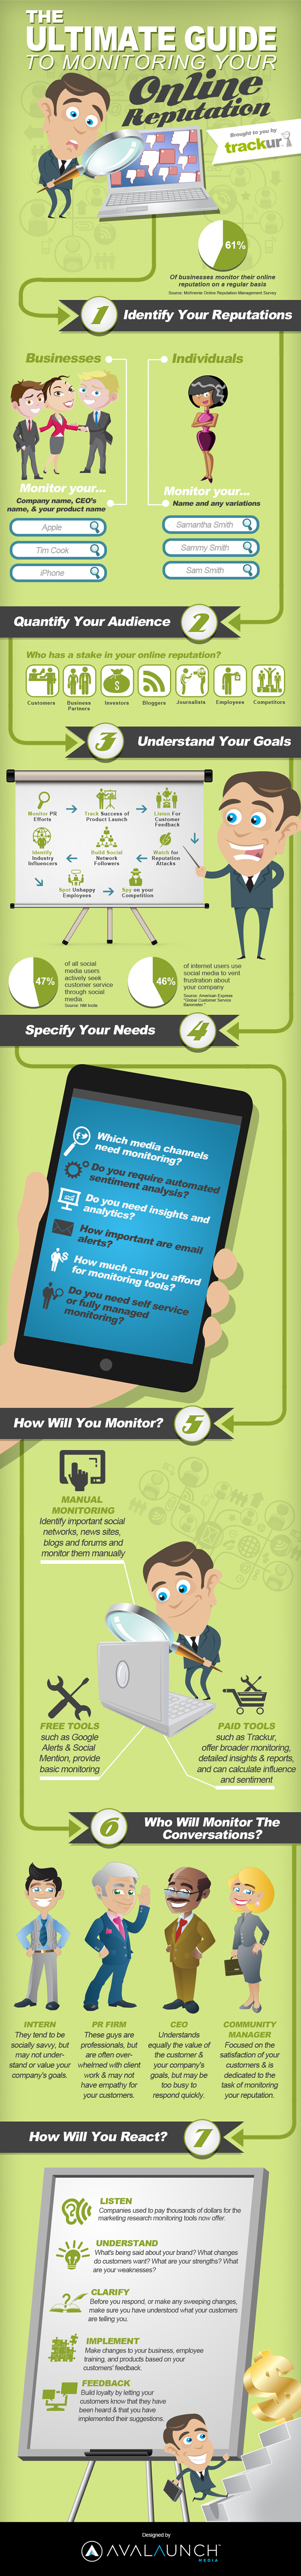 online reputation monitoring guide infographic